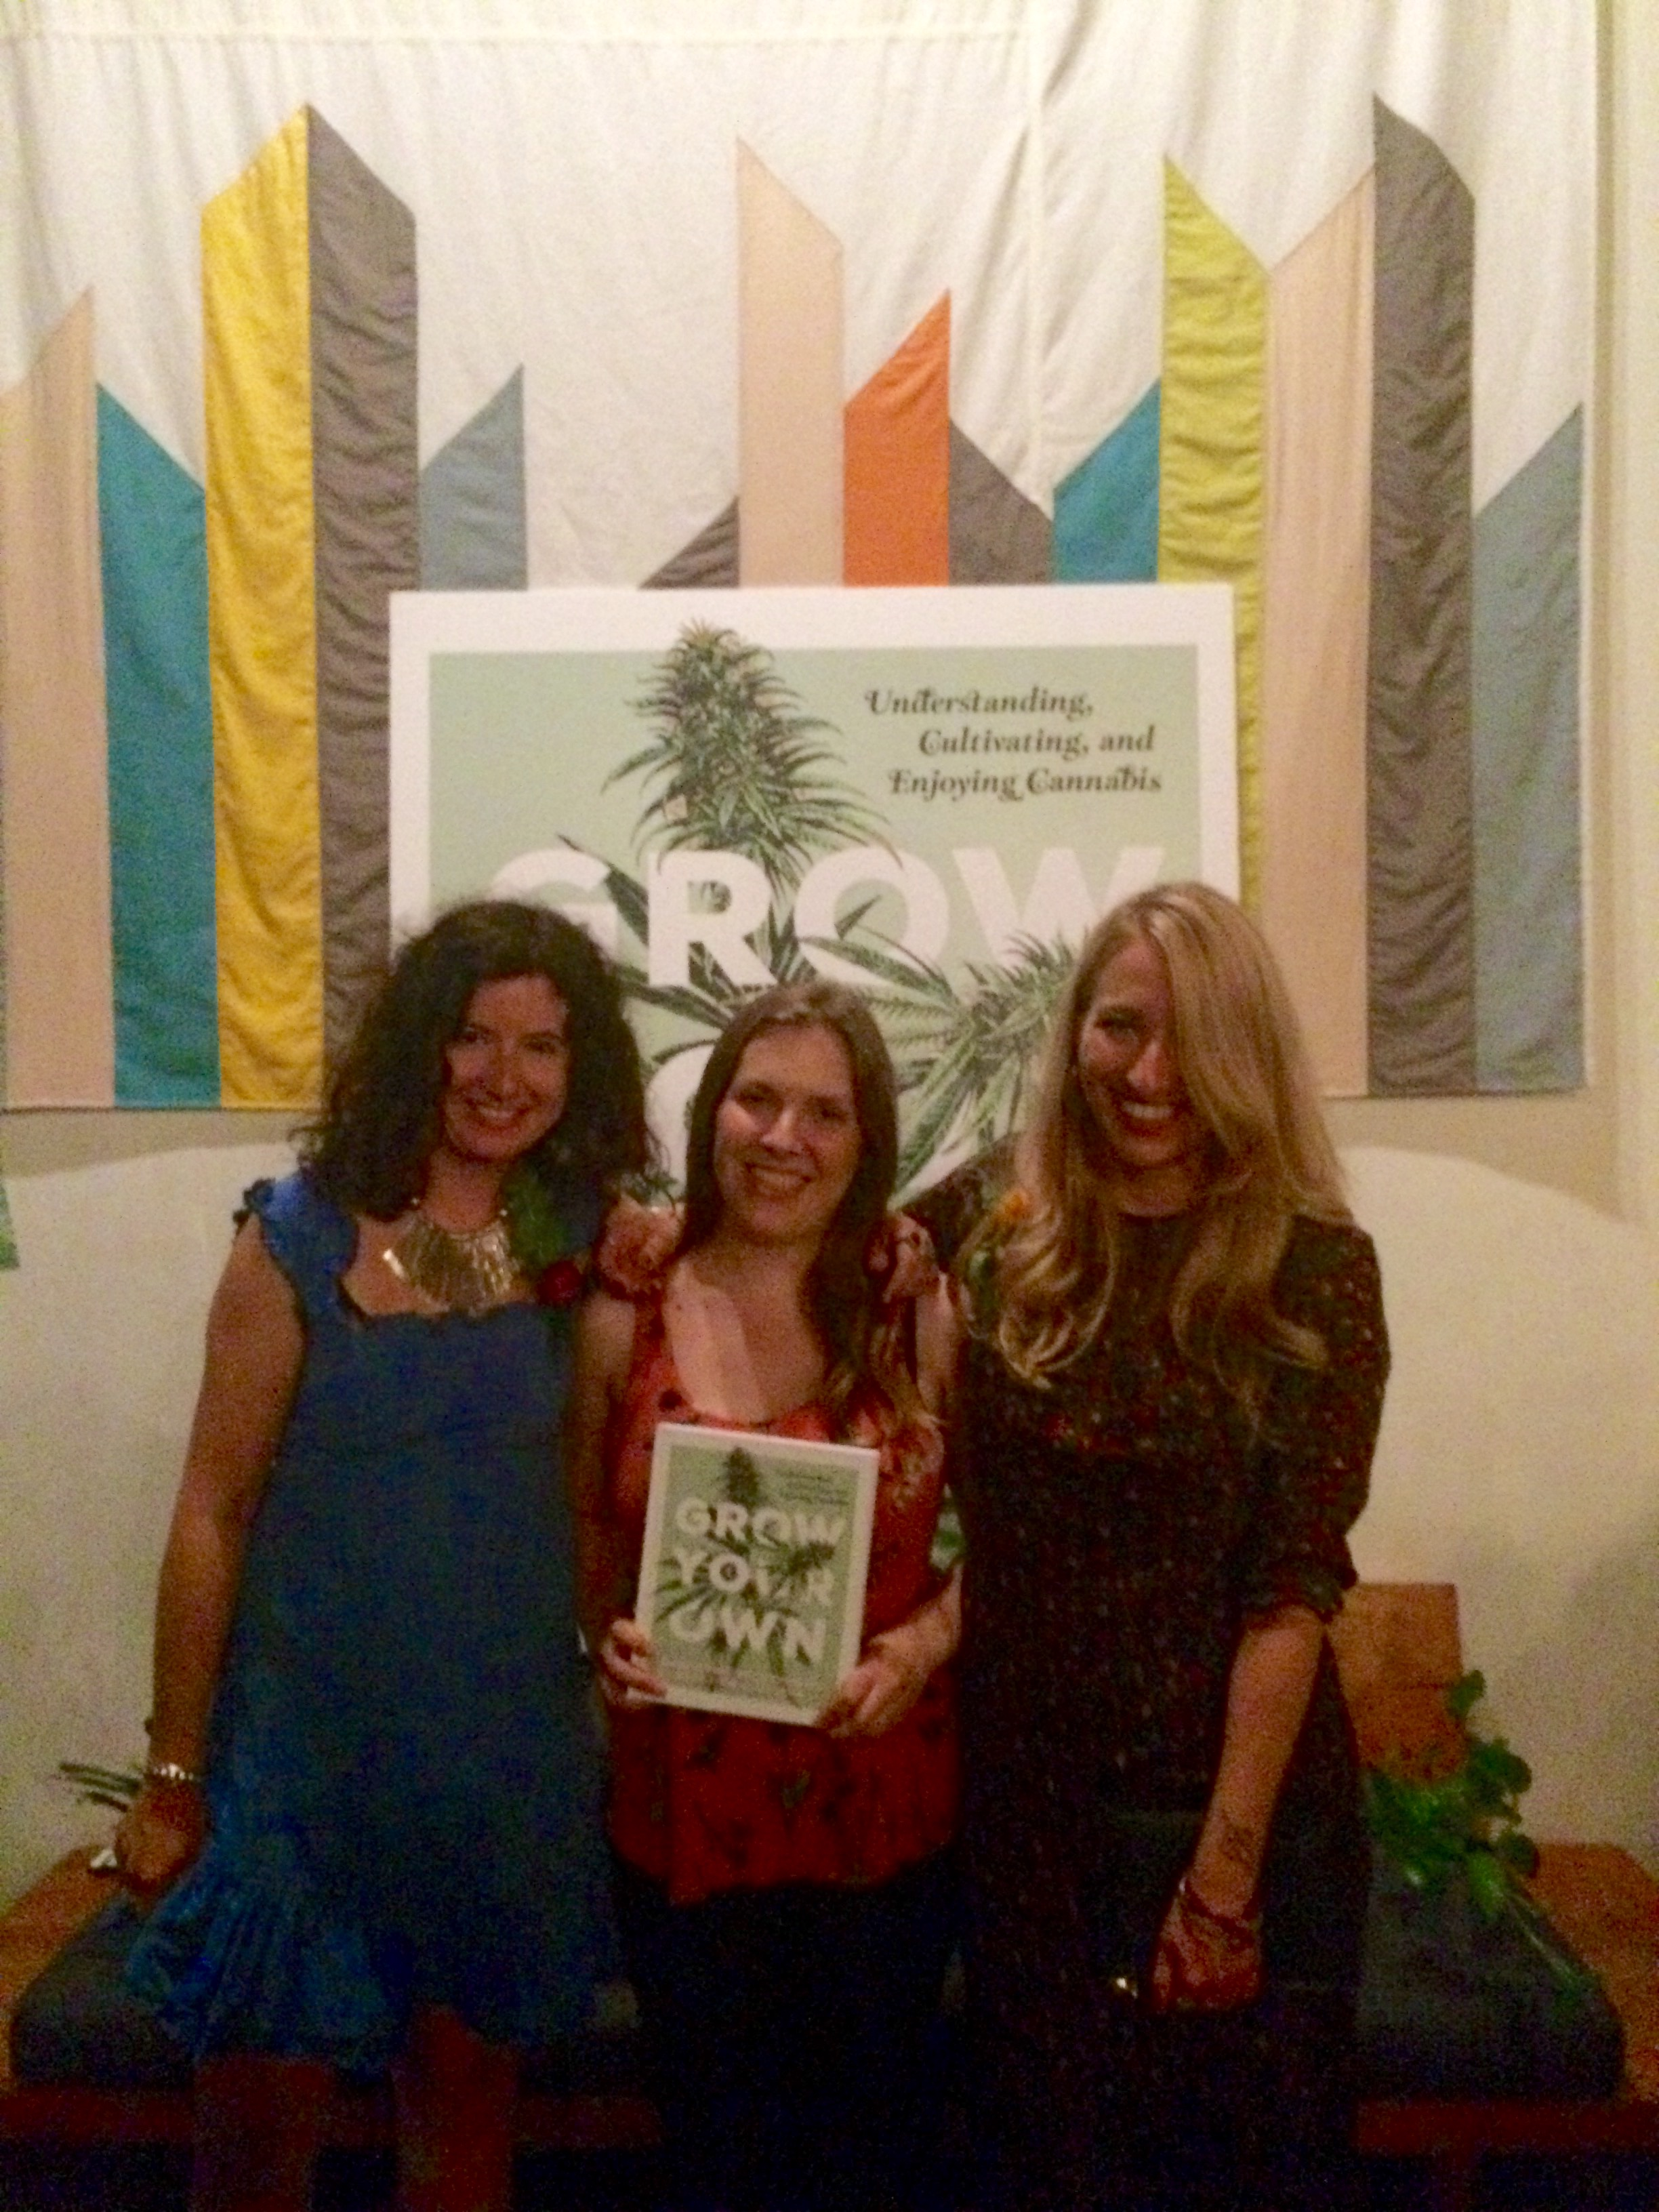 Me, Sabrina and Nichole. The three of us worked for weeks to make this awesome  Grow Your Own  launch party happen. Couldn't be happier with the end result.